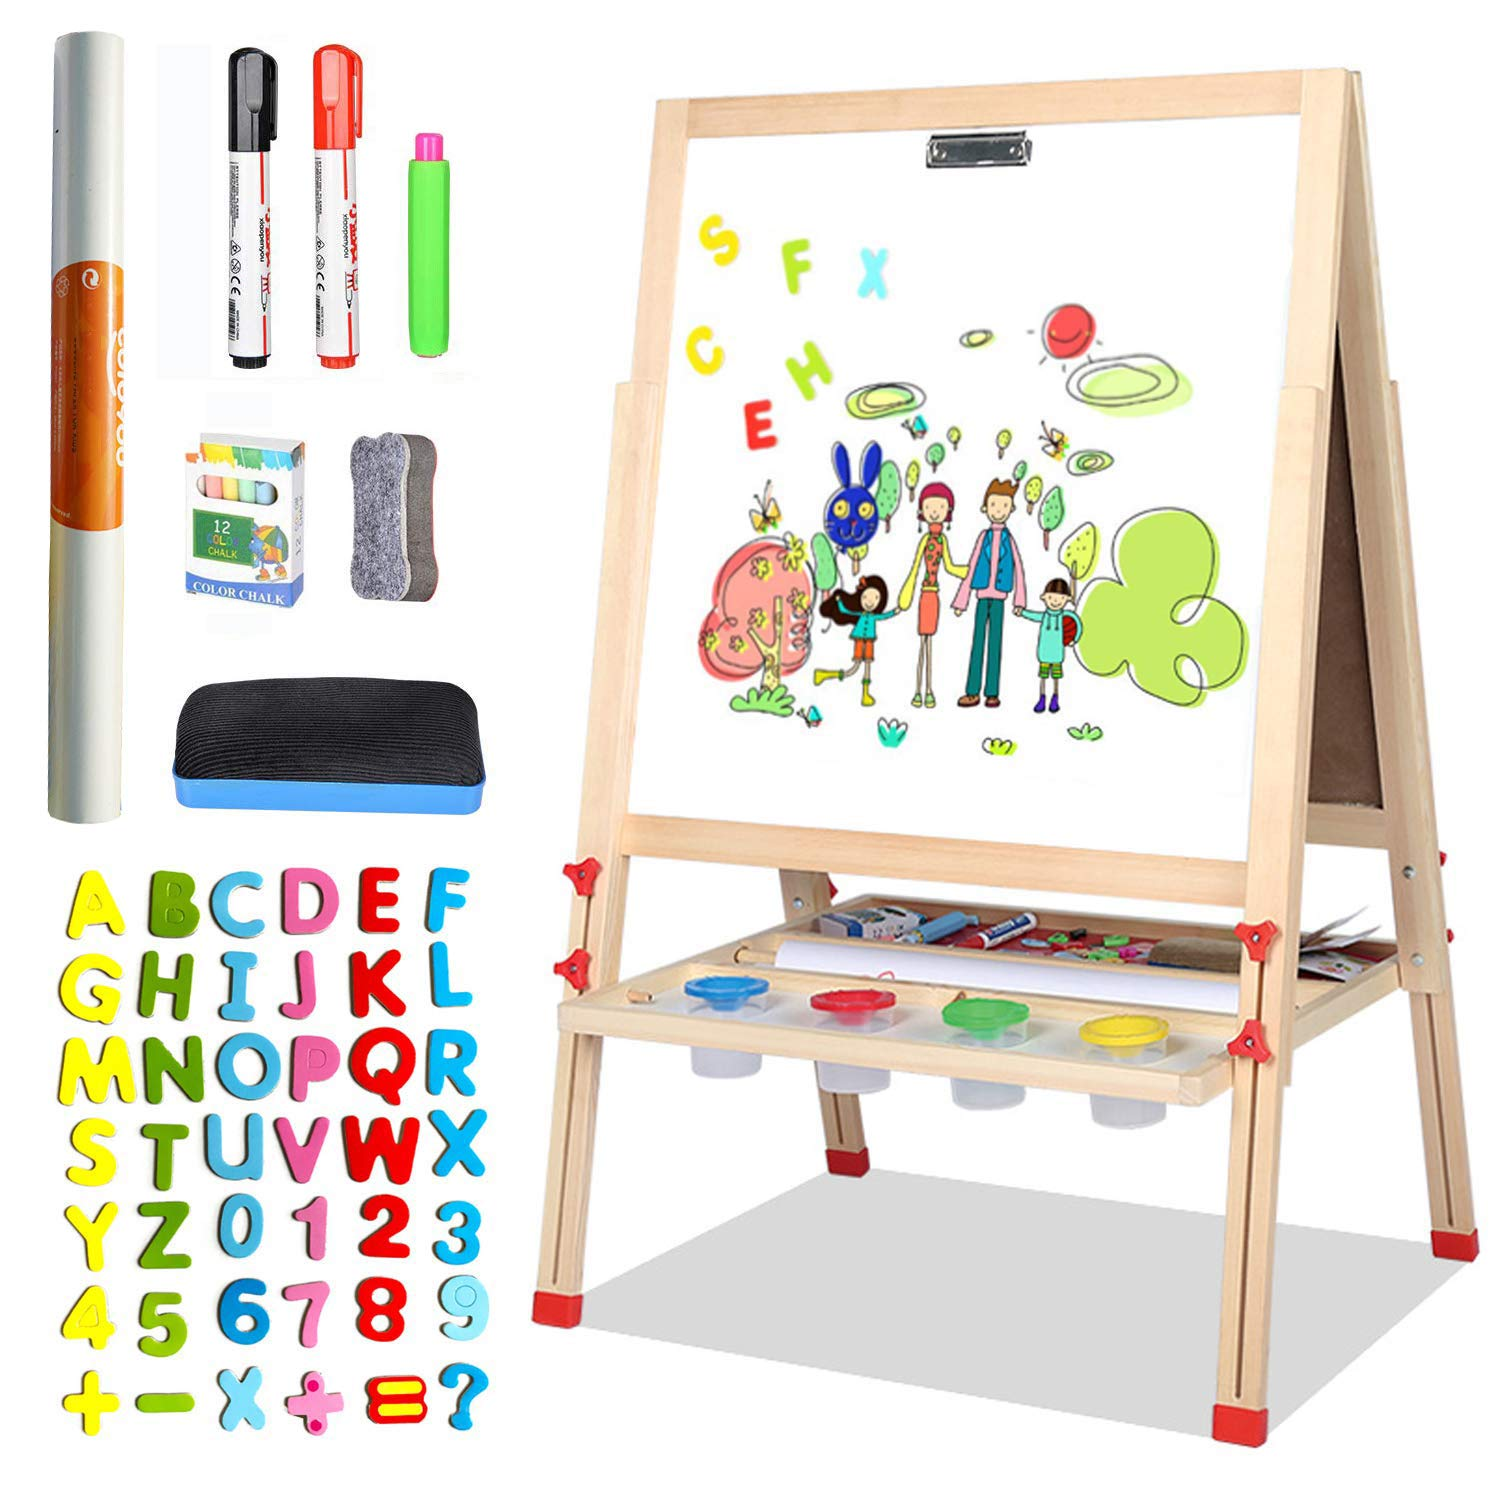 Top 7 Best Easel for Toddlers (2019 Reviews) 7